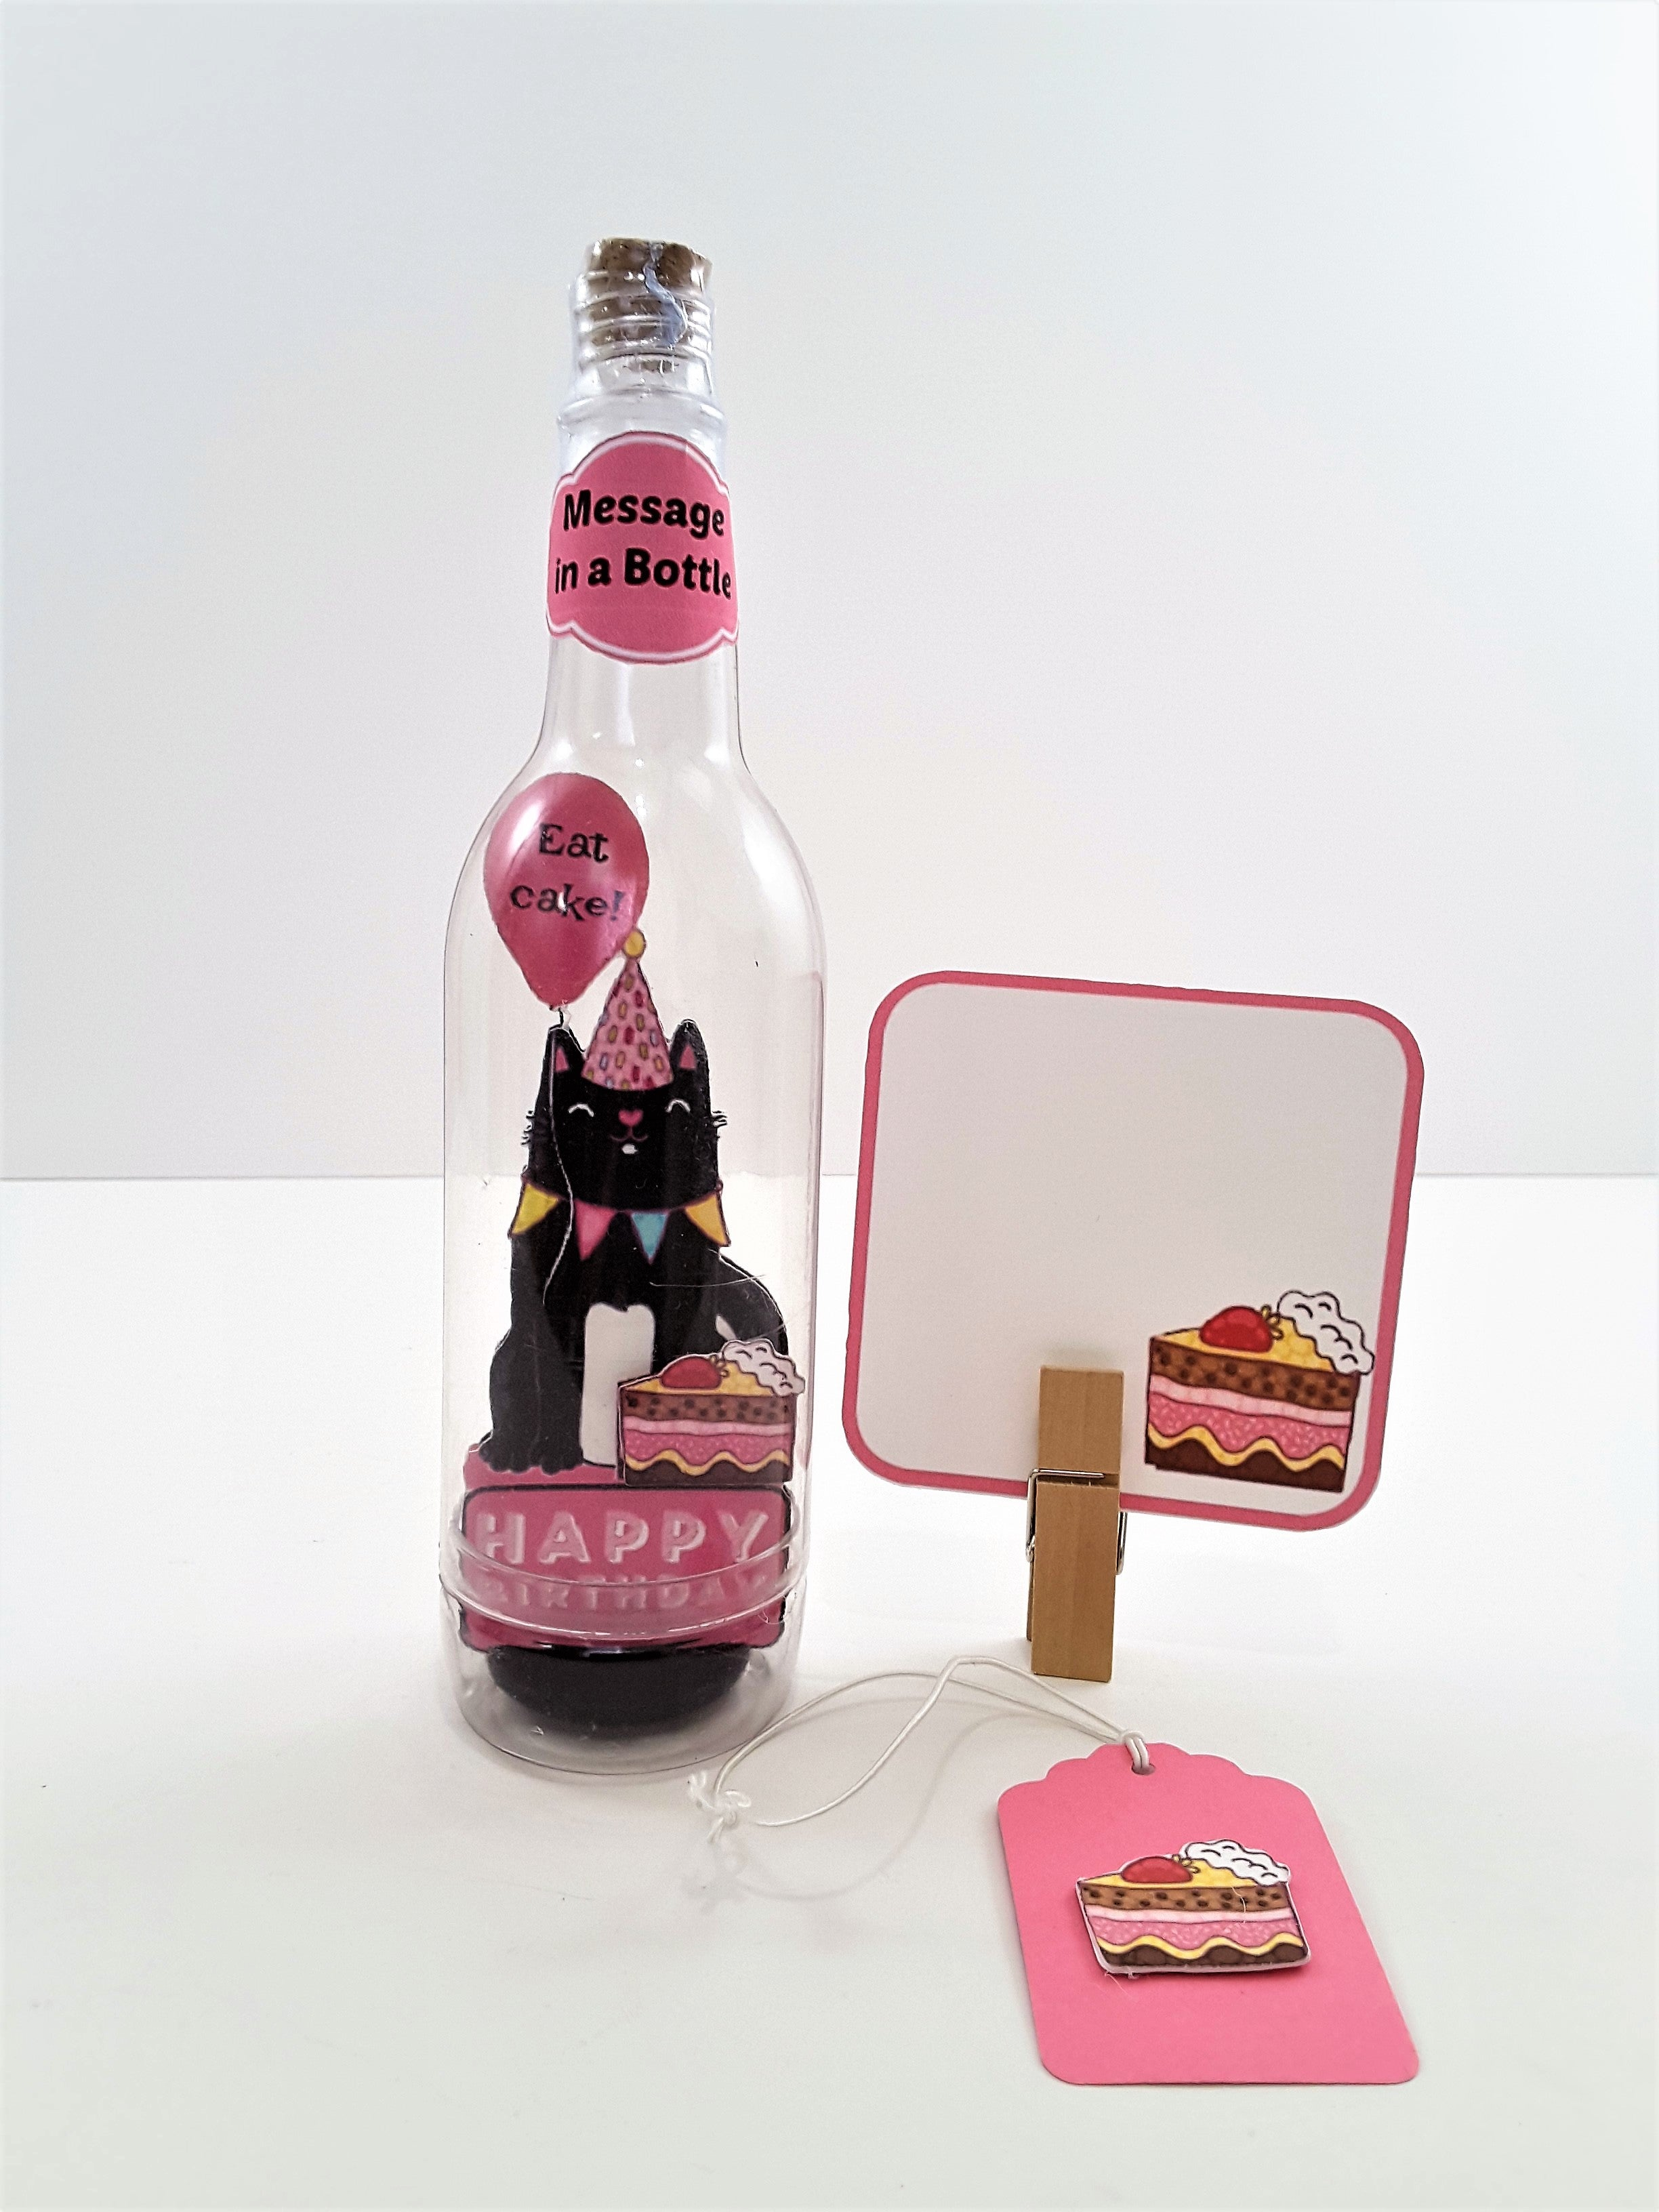 Happy Birthday Kitty Message in a Bottle - TheLastWordBish.com